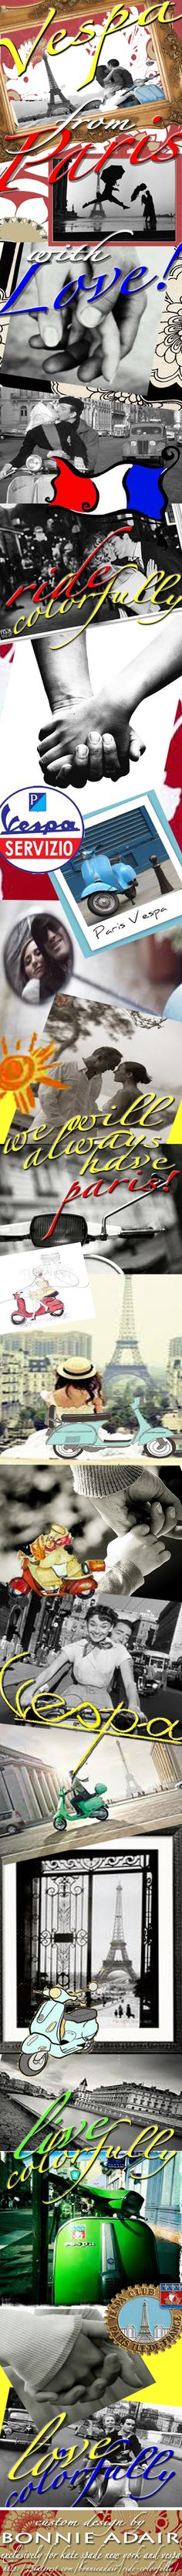 #ridecolorfully #vespa ride colorfully  @kate spade new york  @Kate @ Wit + Delight  @FATHOM - Way to Go